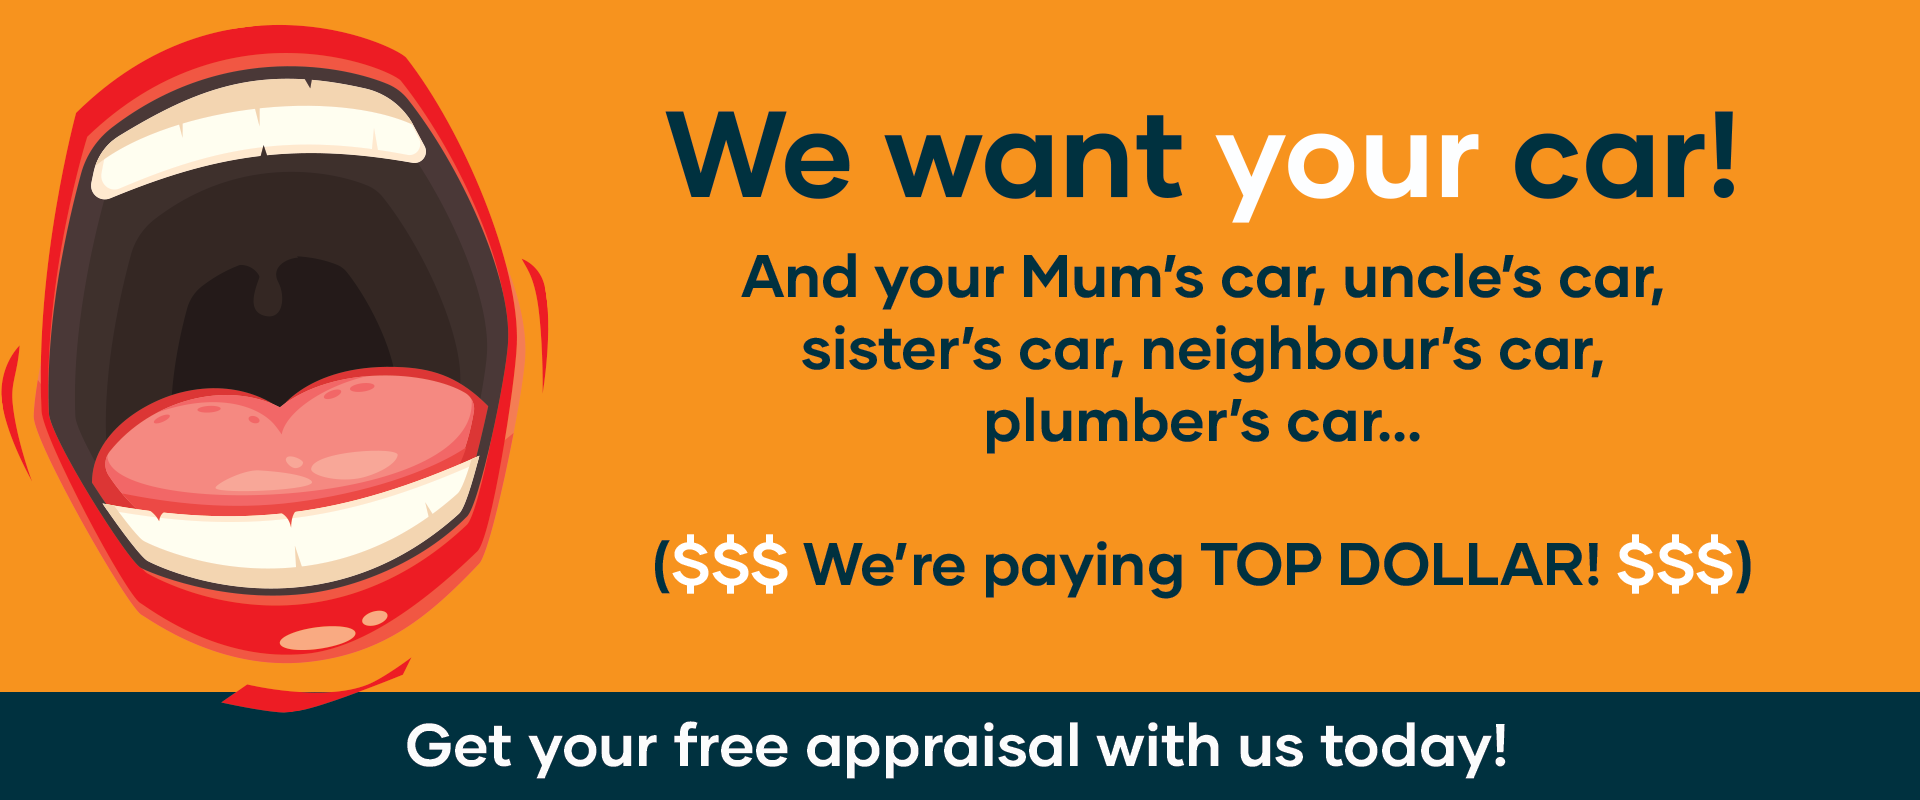 We want to buy your car! Get a free appraisal today.